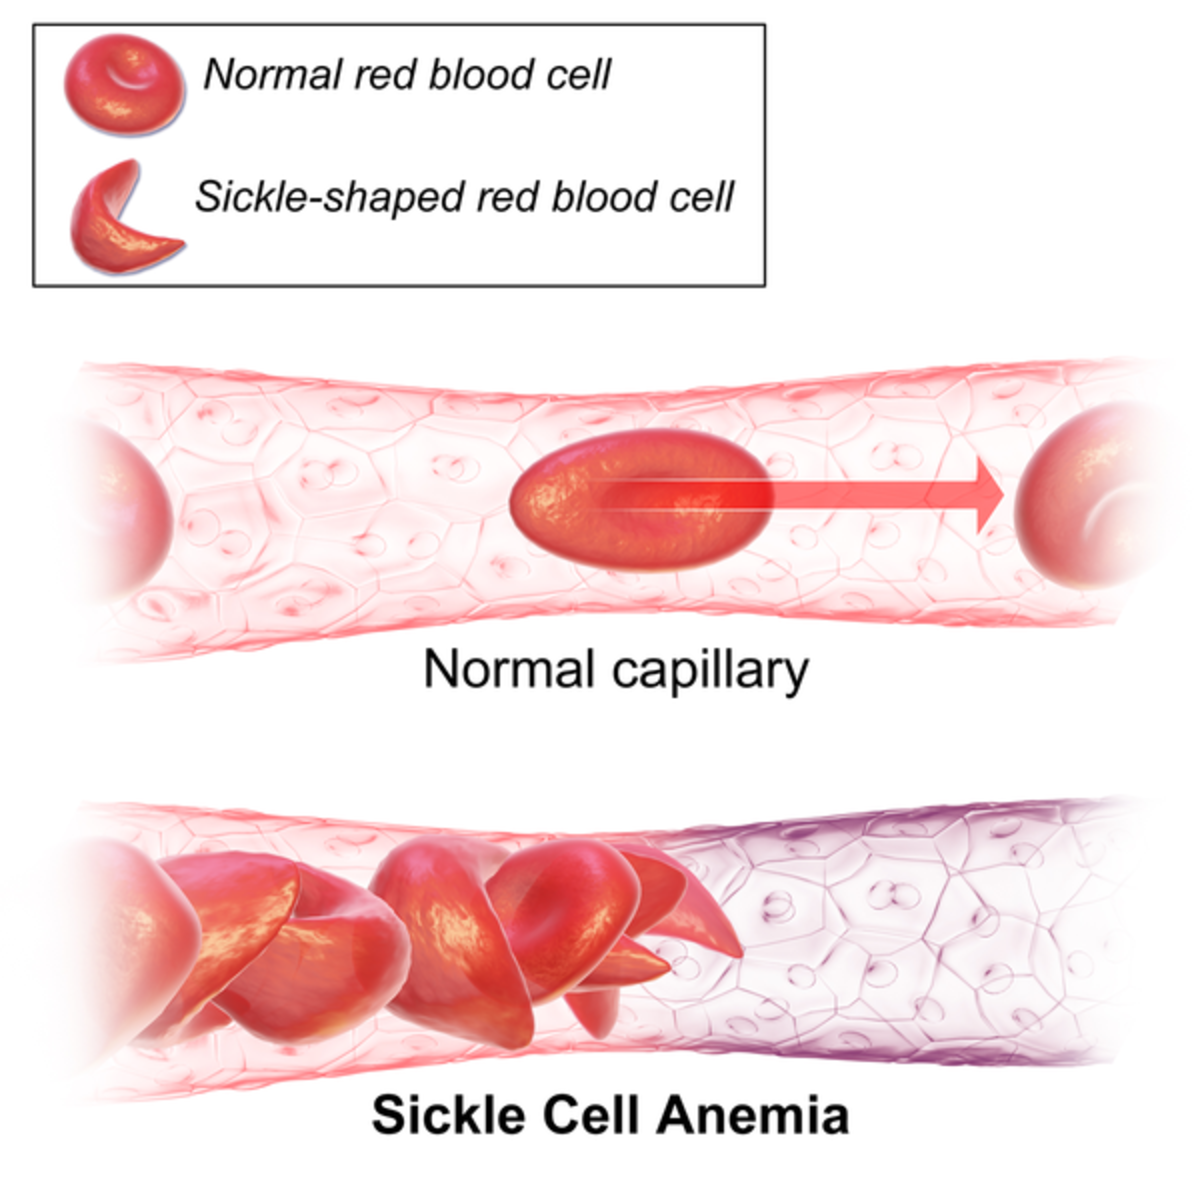 the prevalence and effects of sickle cell anemia in the united states Child food insecurity and iron deficiency anemia in low-income infants and toddlers in the united states  sickle cell disease, or lead  insecurity and iron.